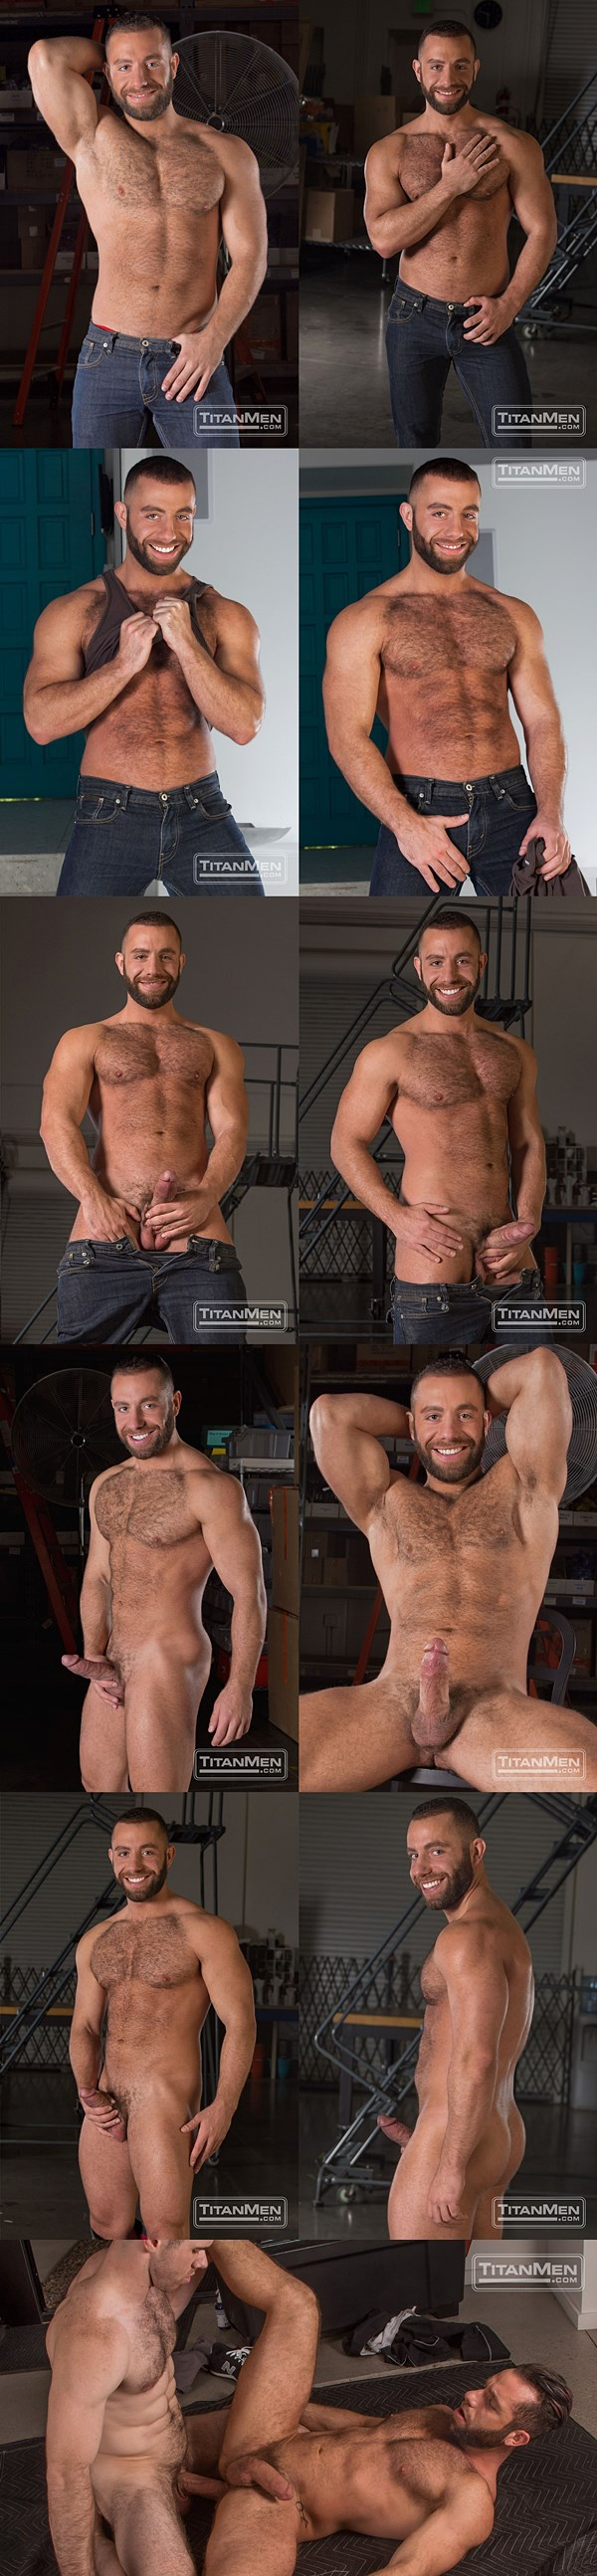 Hot masculine hunk Eddy CeeTee's bottoming debut at Titanmen